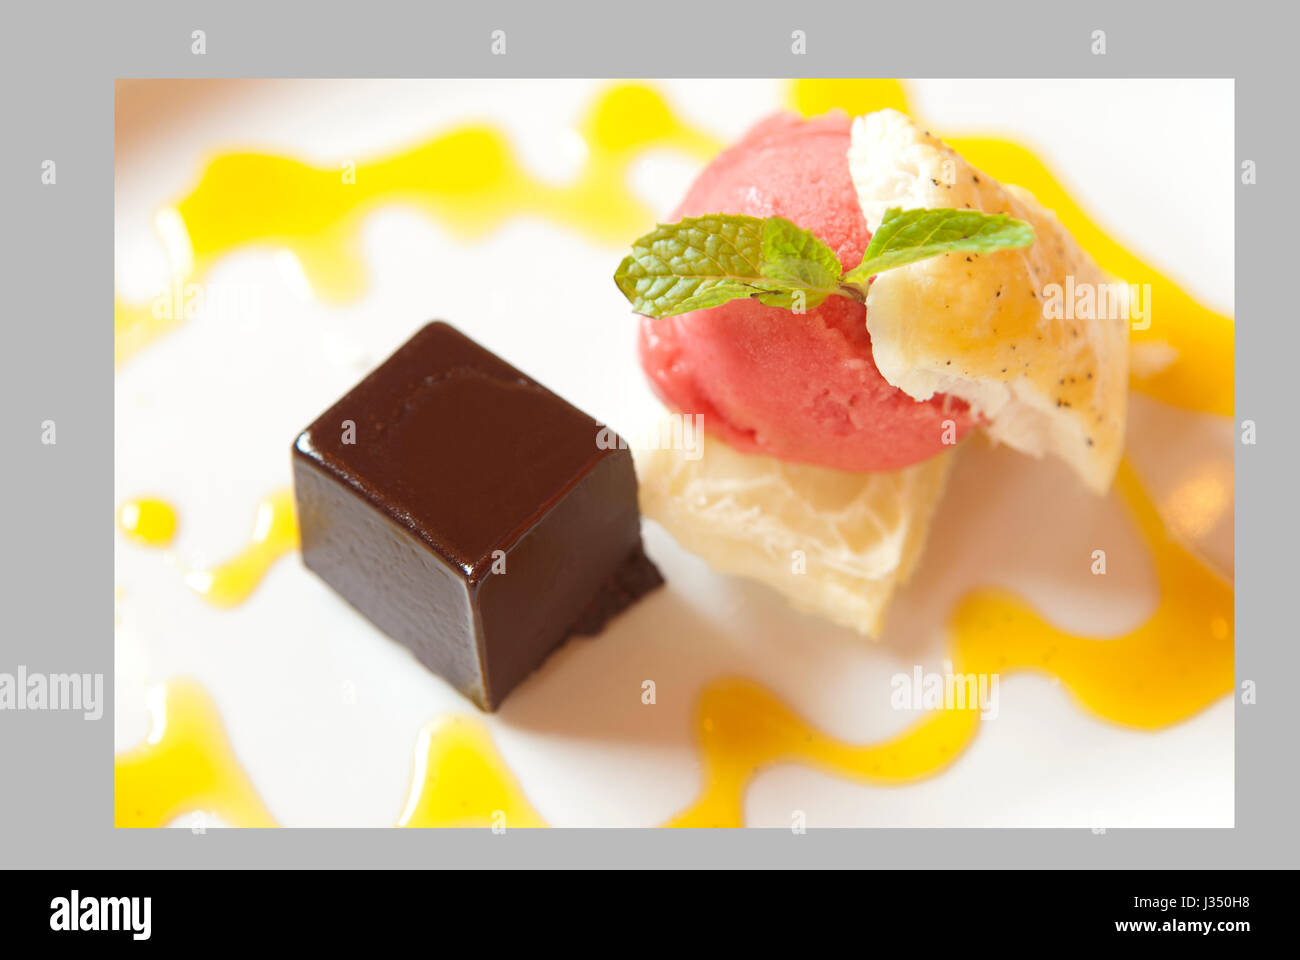 Overhead view of flourless chocolate torte with puff pastry and strawberry ice cream on a white plate Stock Photo